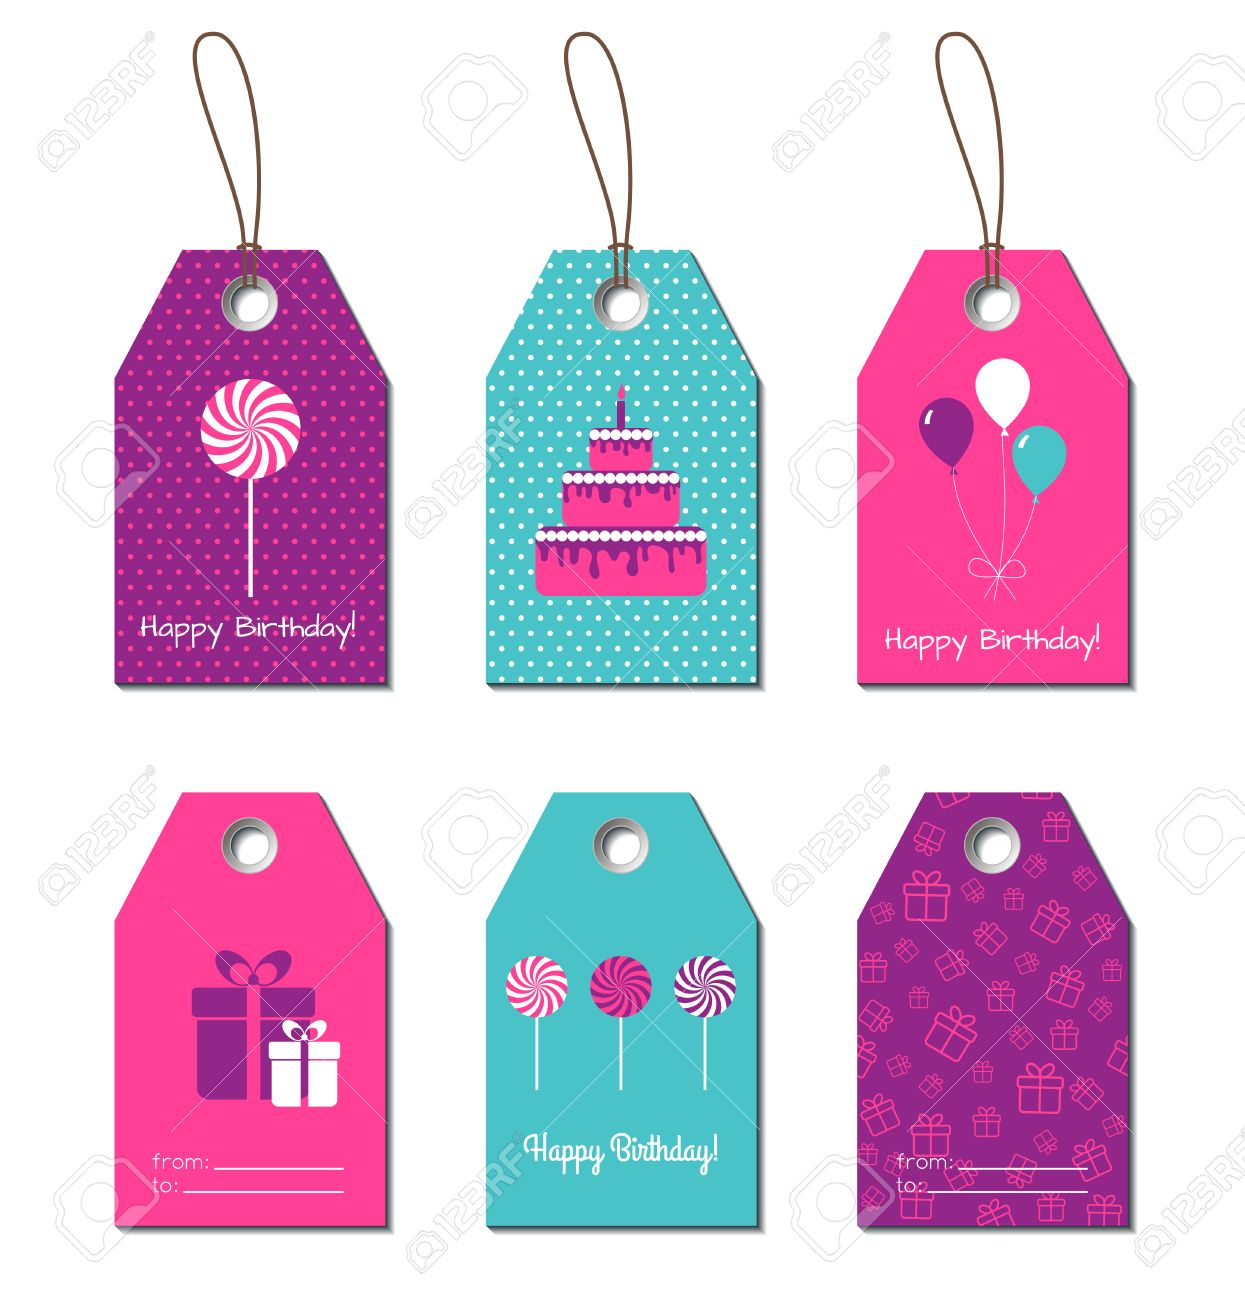 happy birthday gift labels ; 65306531-happy-birthday-gift-tags-vector-gift-cards-labels-for-birthday-design